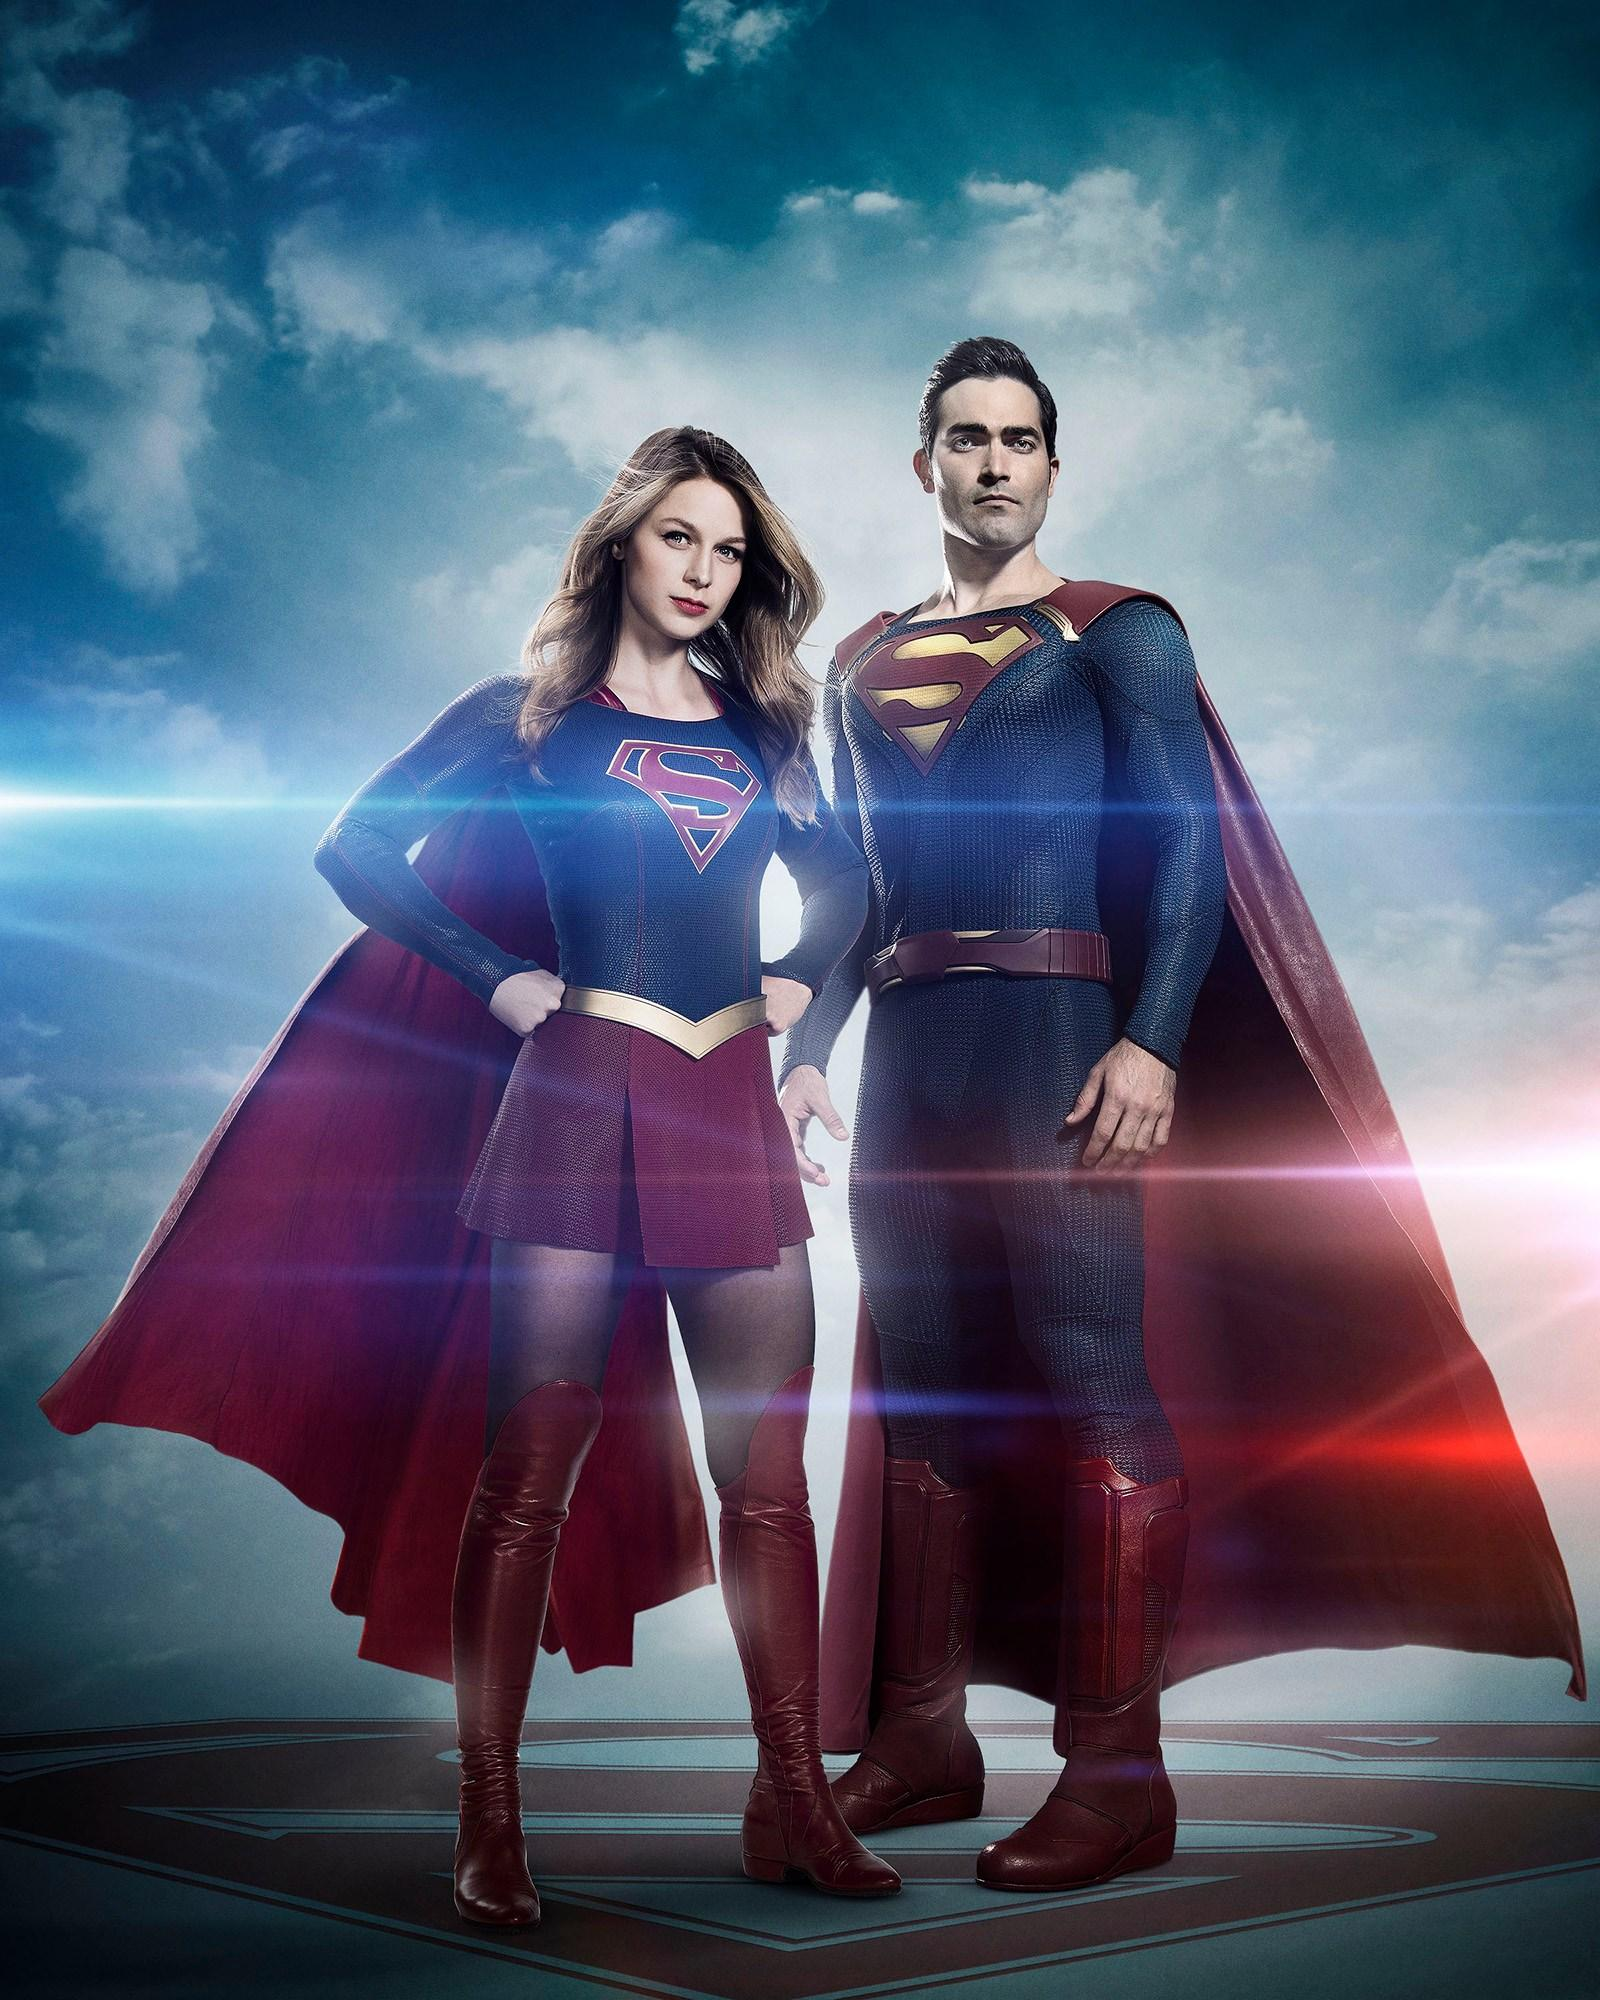 Melissa Benoist as Supergirl, Tyler Hoechlin as Superman